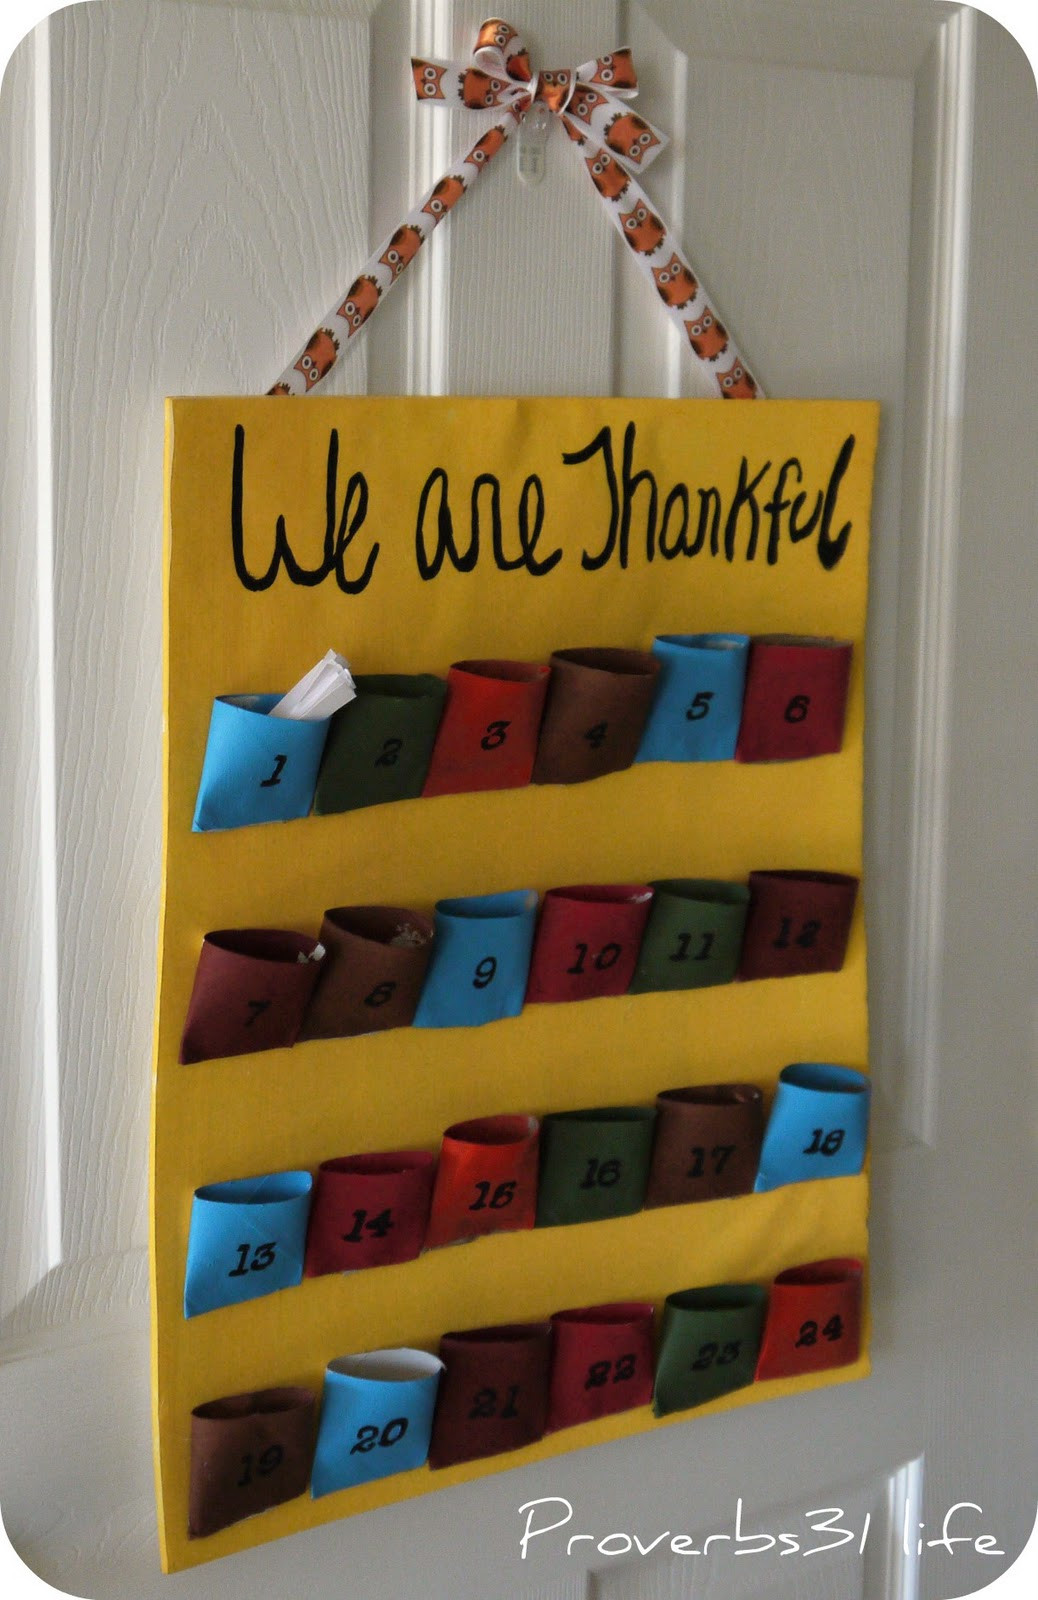 Toilet Paper Roll Thanksgiving Crafts  Proverbs 31 Life Thankful for Toilet Paper